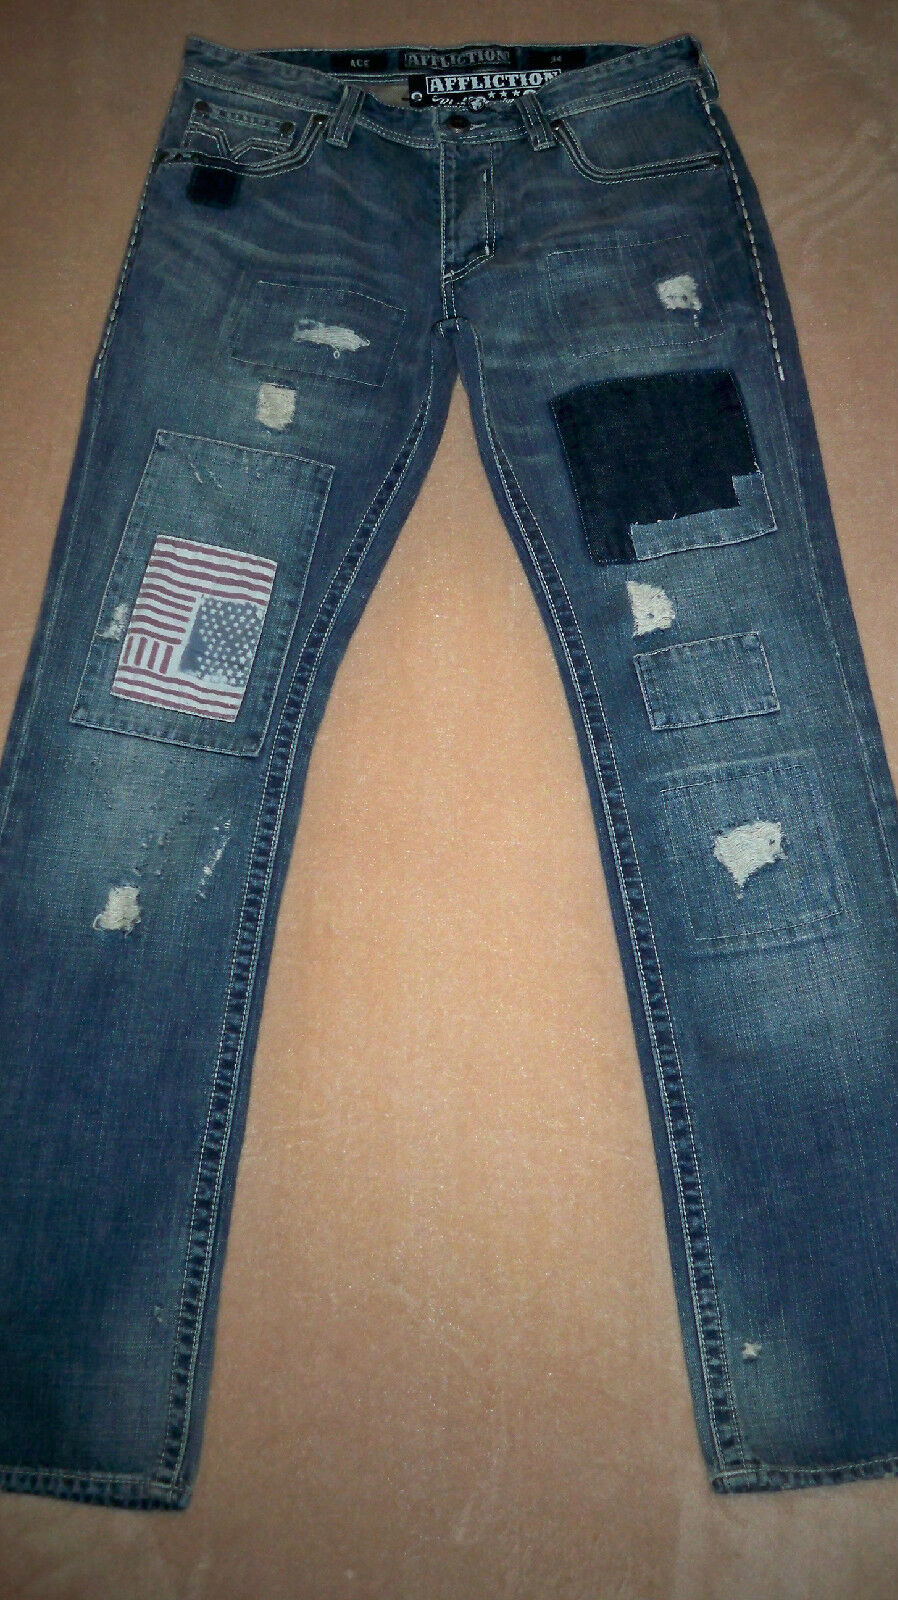 AFFLICTION Patched Jeans ACE SIERRA MISFIT blueE 33   34 x 33 Mens Orig.+